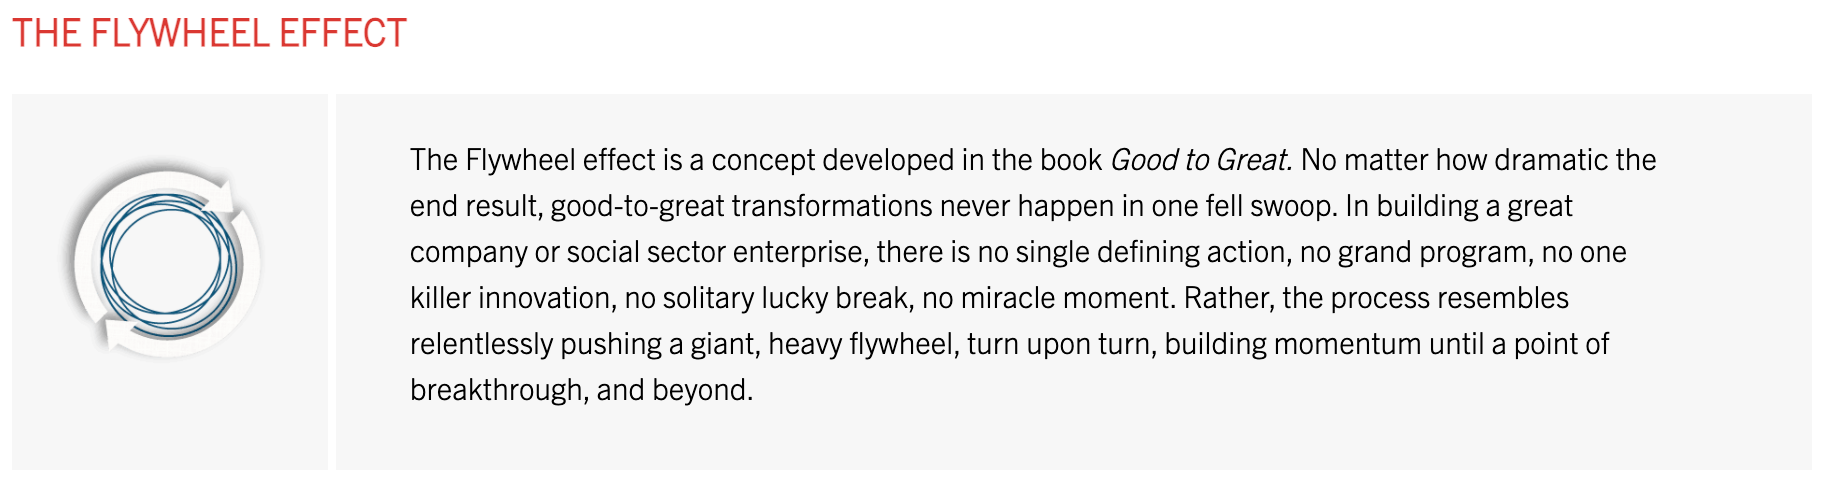 Good to Great - Flywheel Concept